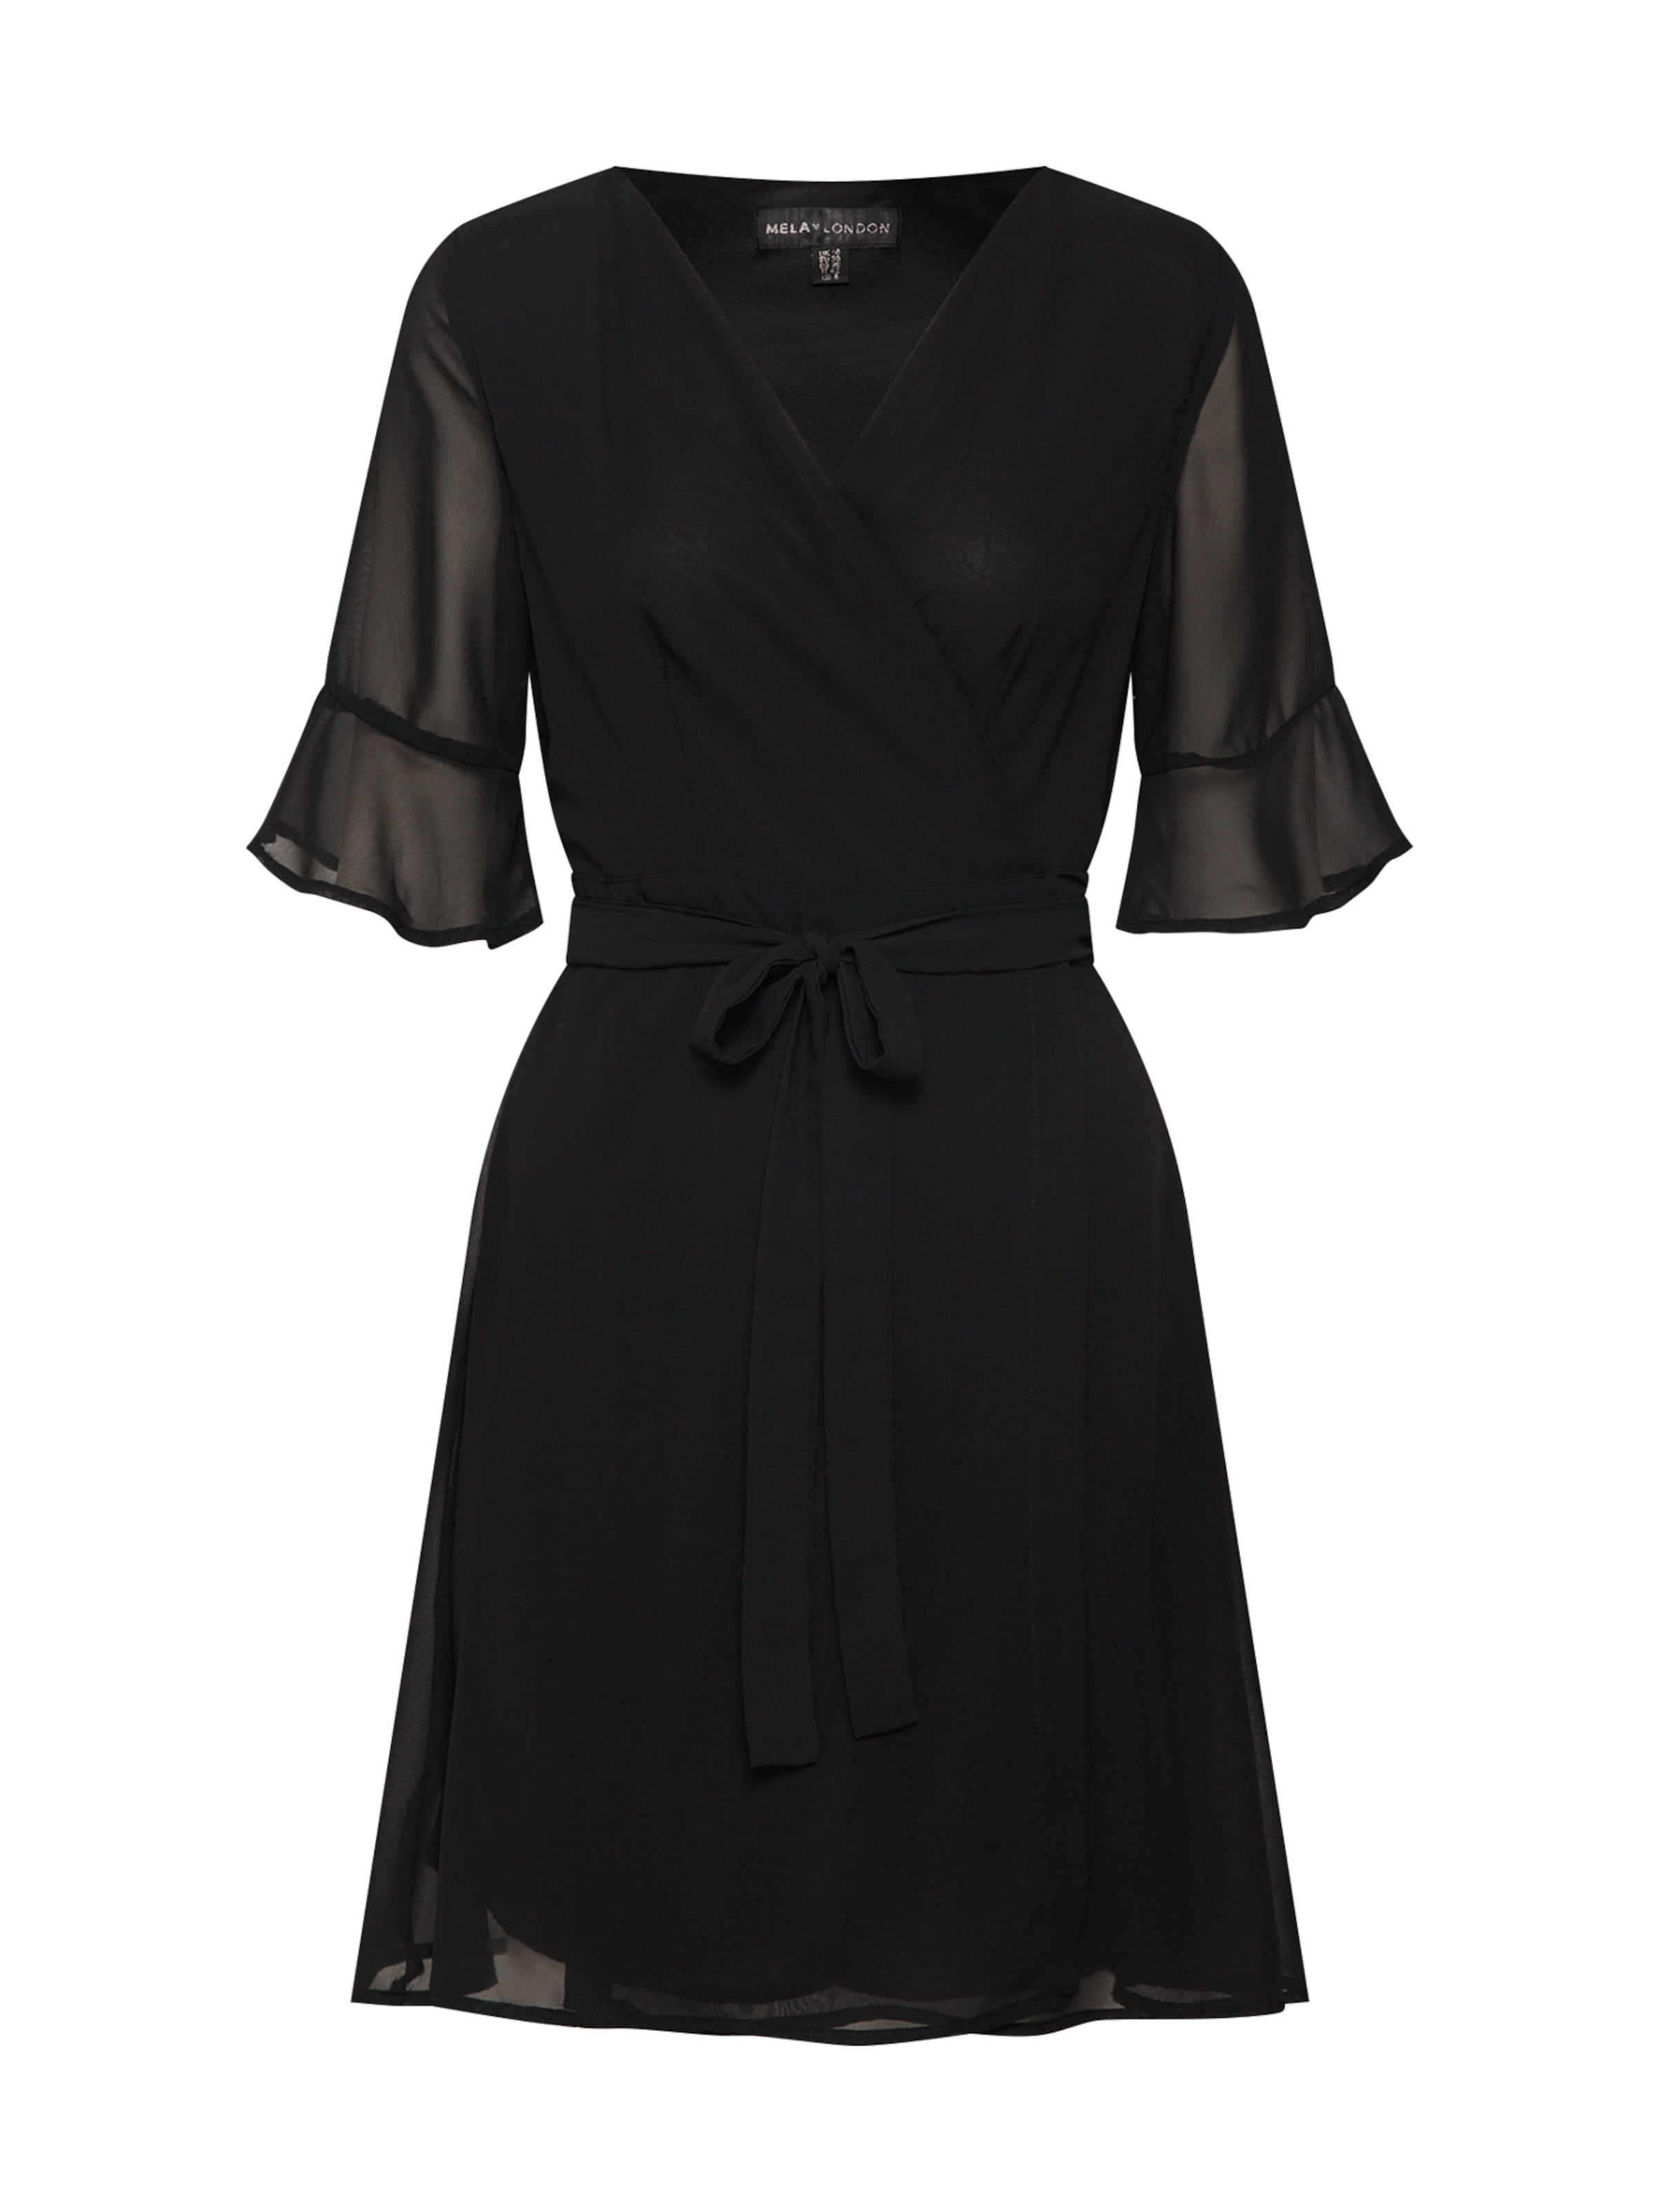 Dress' In Wrap Mela 'sheer Schwarz Kleid Sleeve London MSGUpzqV